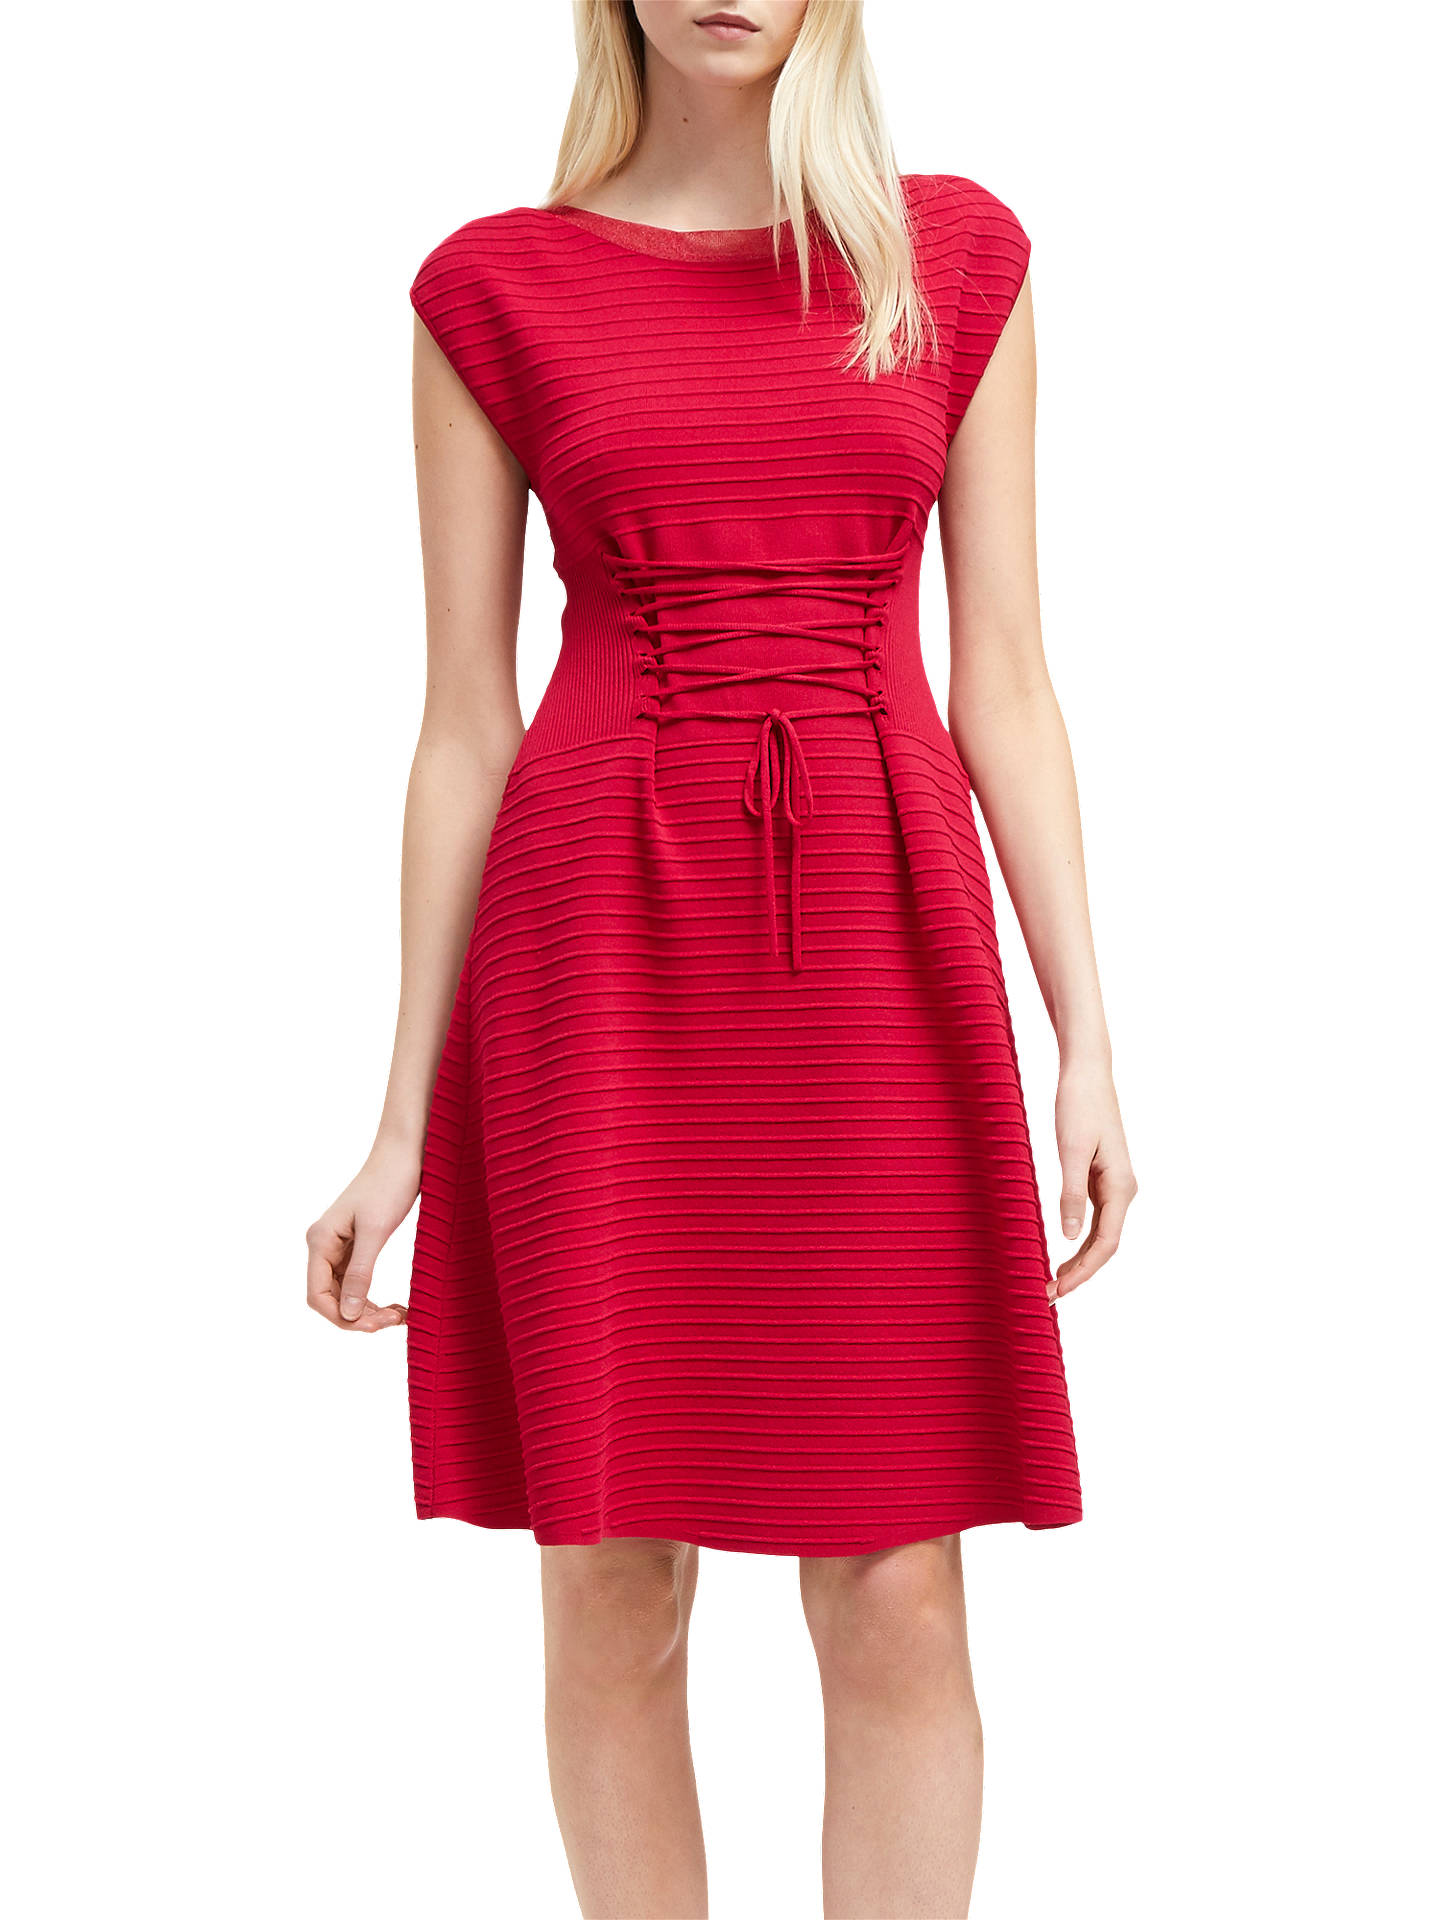 d181a852107 Buy French Connection Crepe Lace Up Dress, Mimosa Pink, 8 Online at  johnlewis.